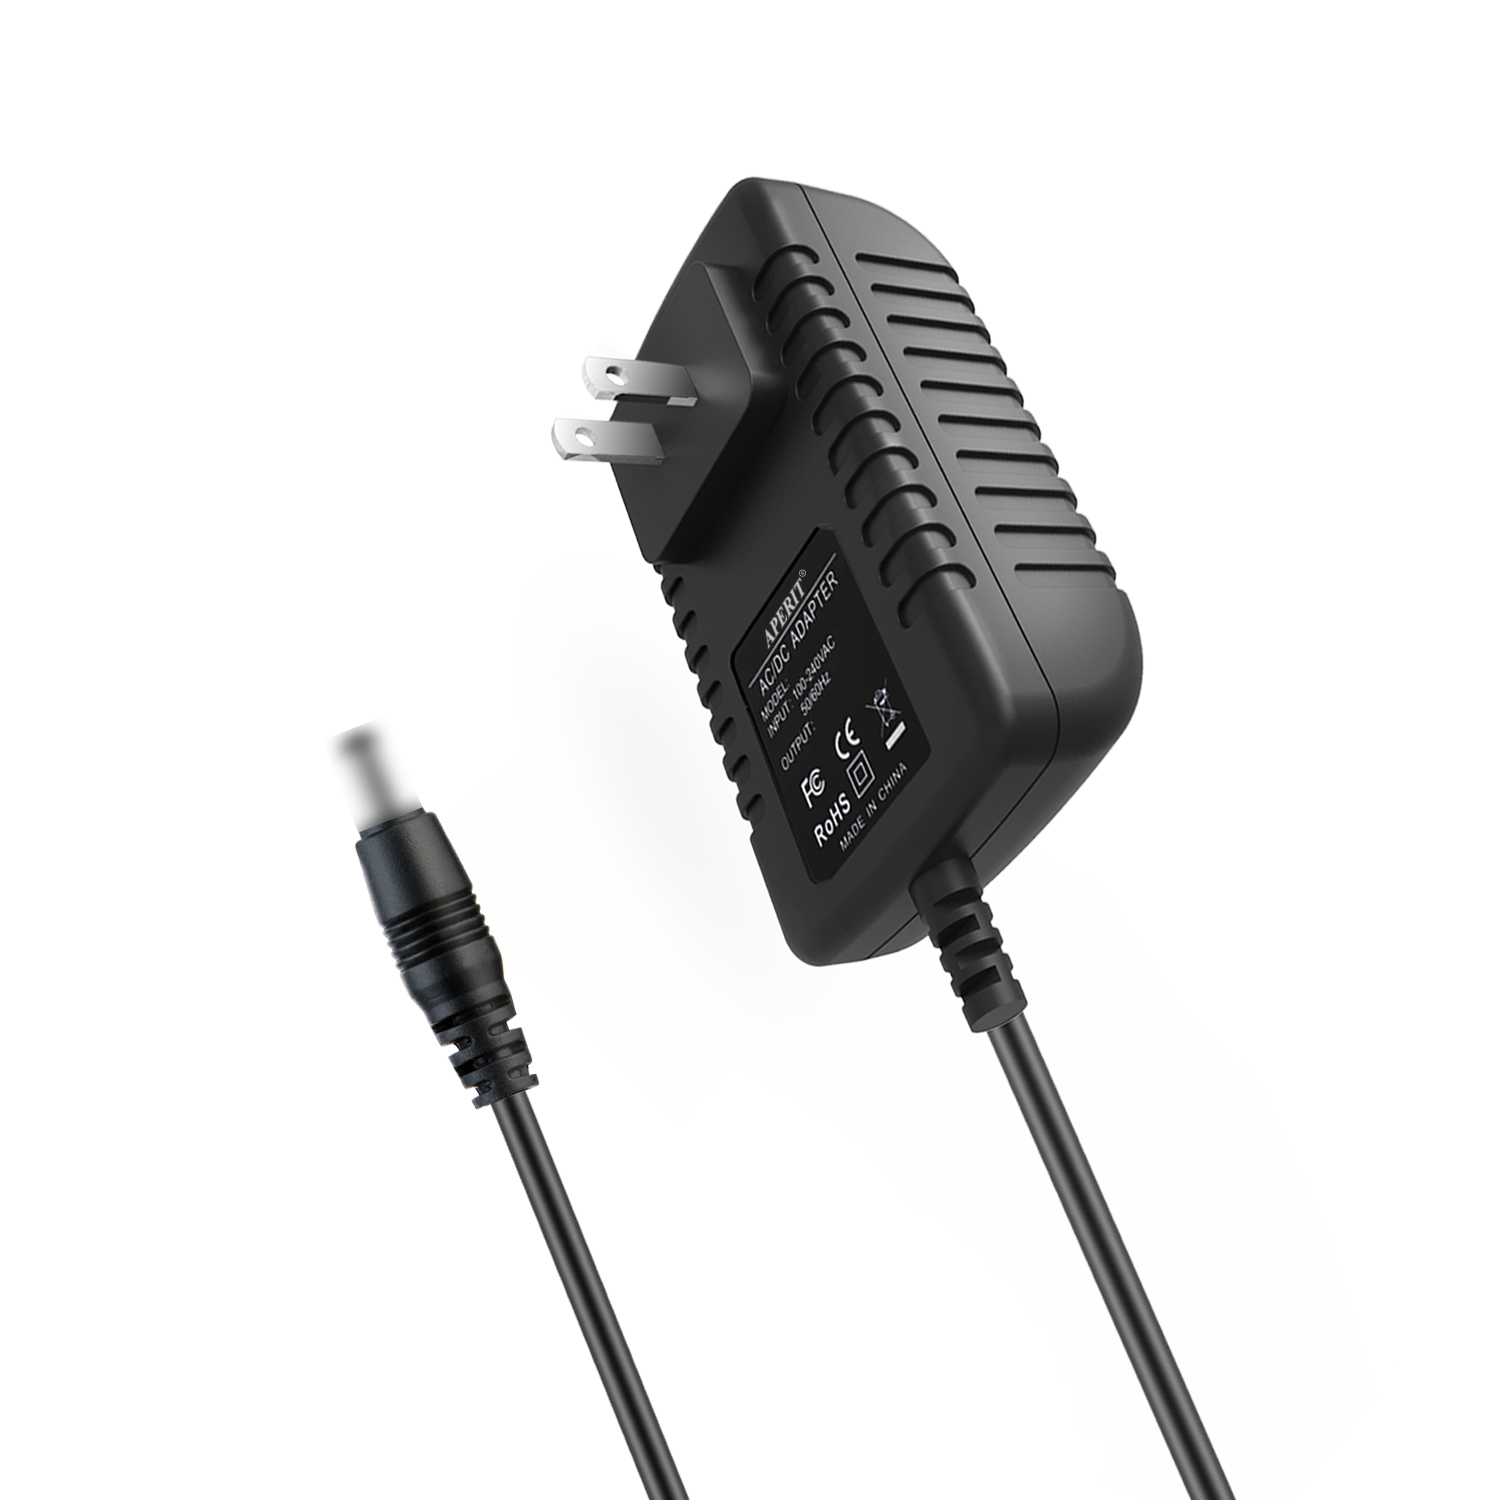 PSS-460 EU Replacement Power Supply for 12V Yamaha PSS-390